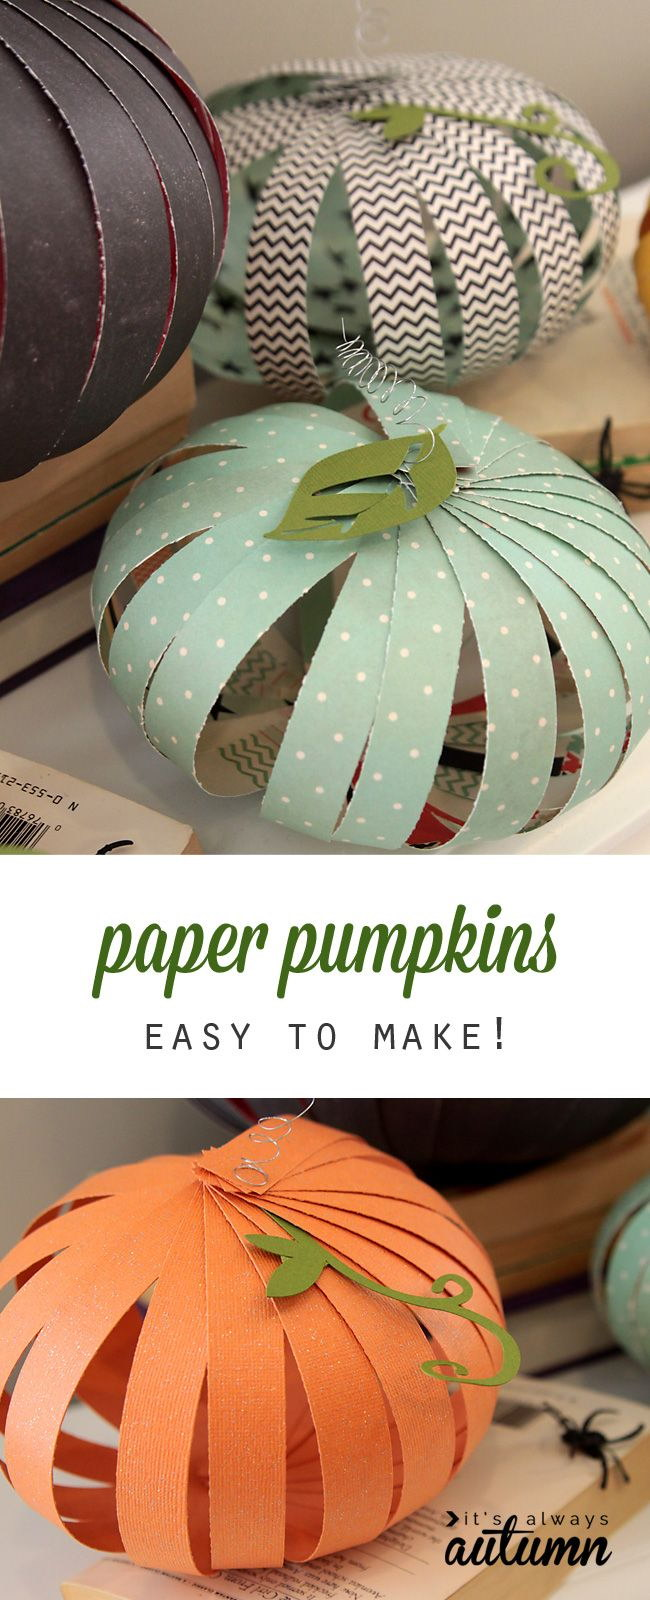 cute inexpensive and super easy to make even kids can do it source